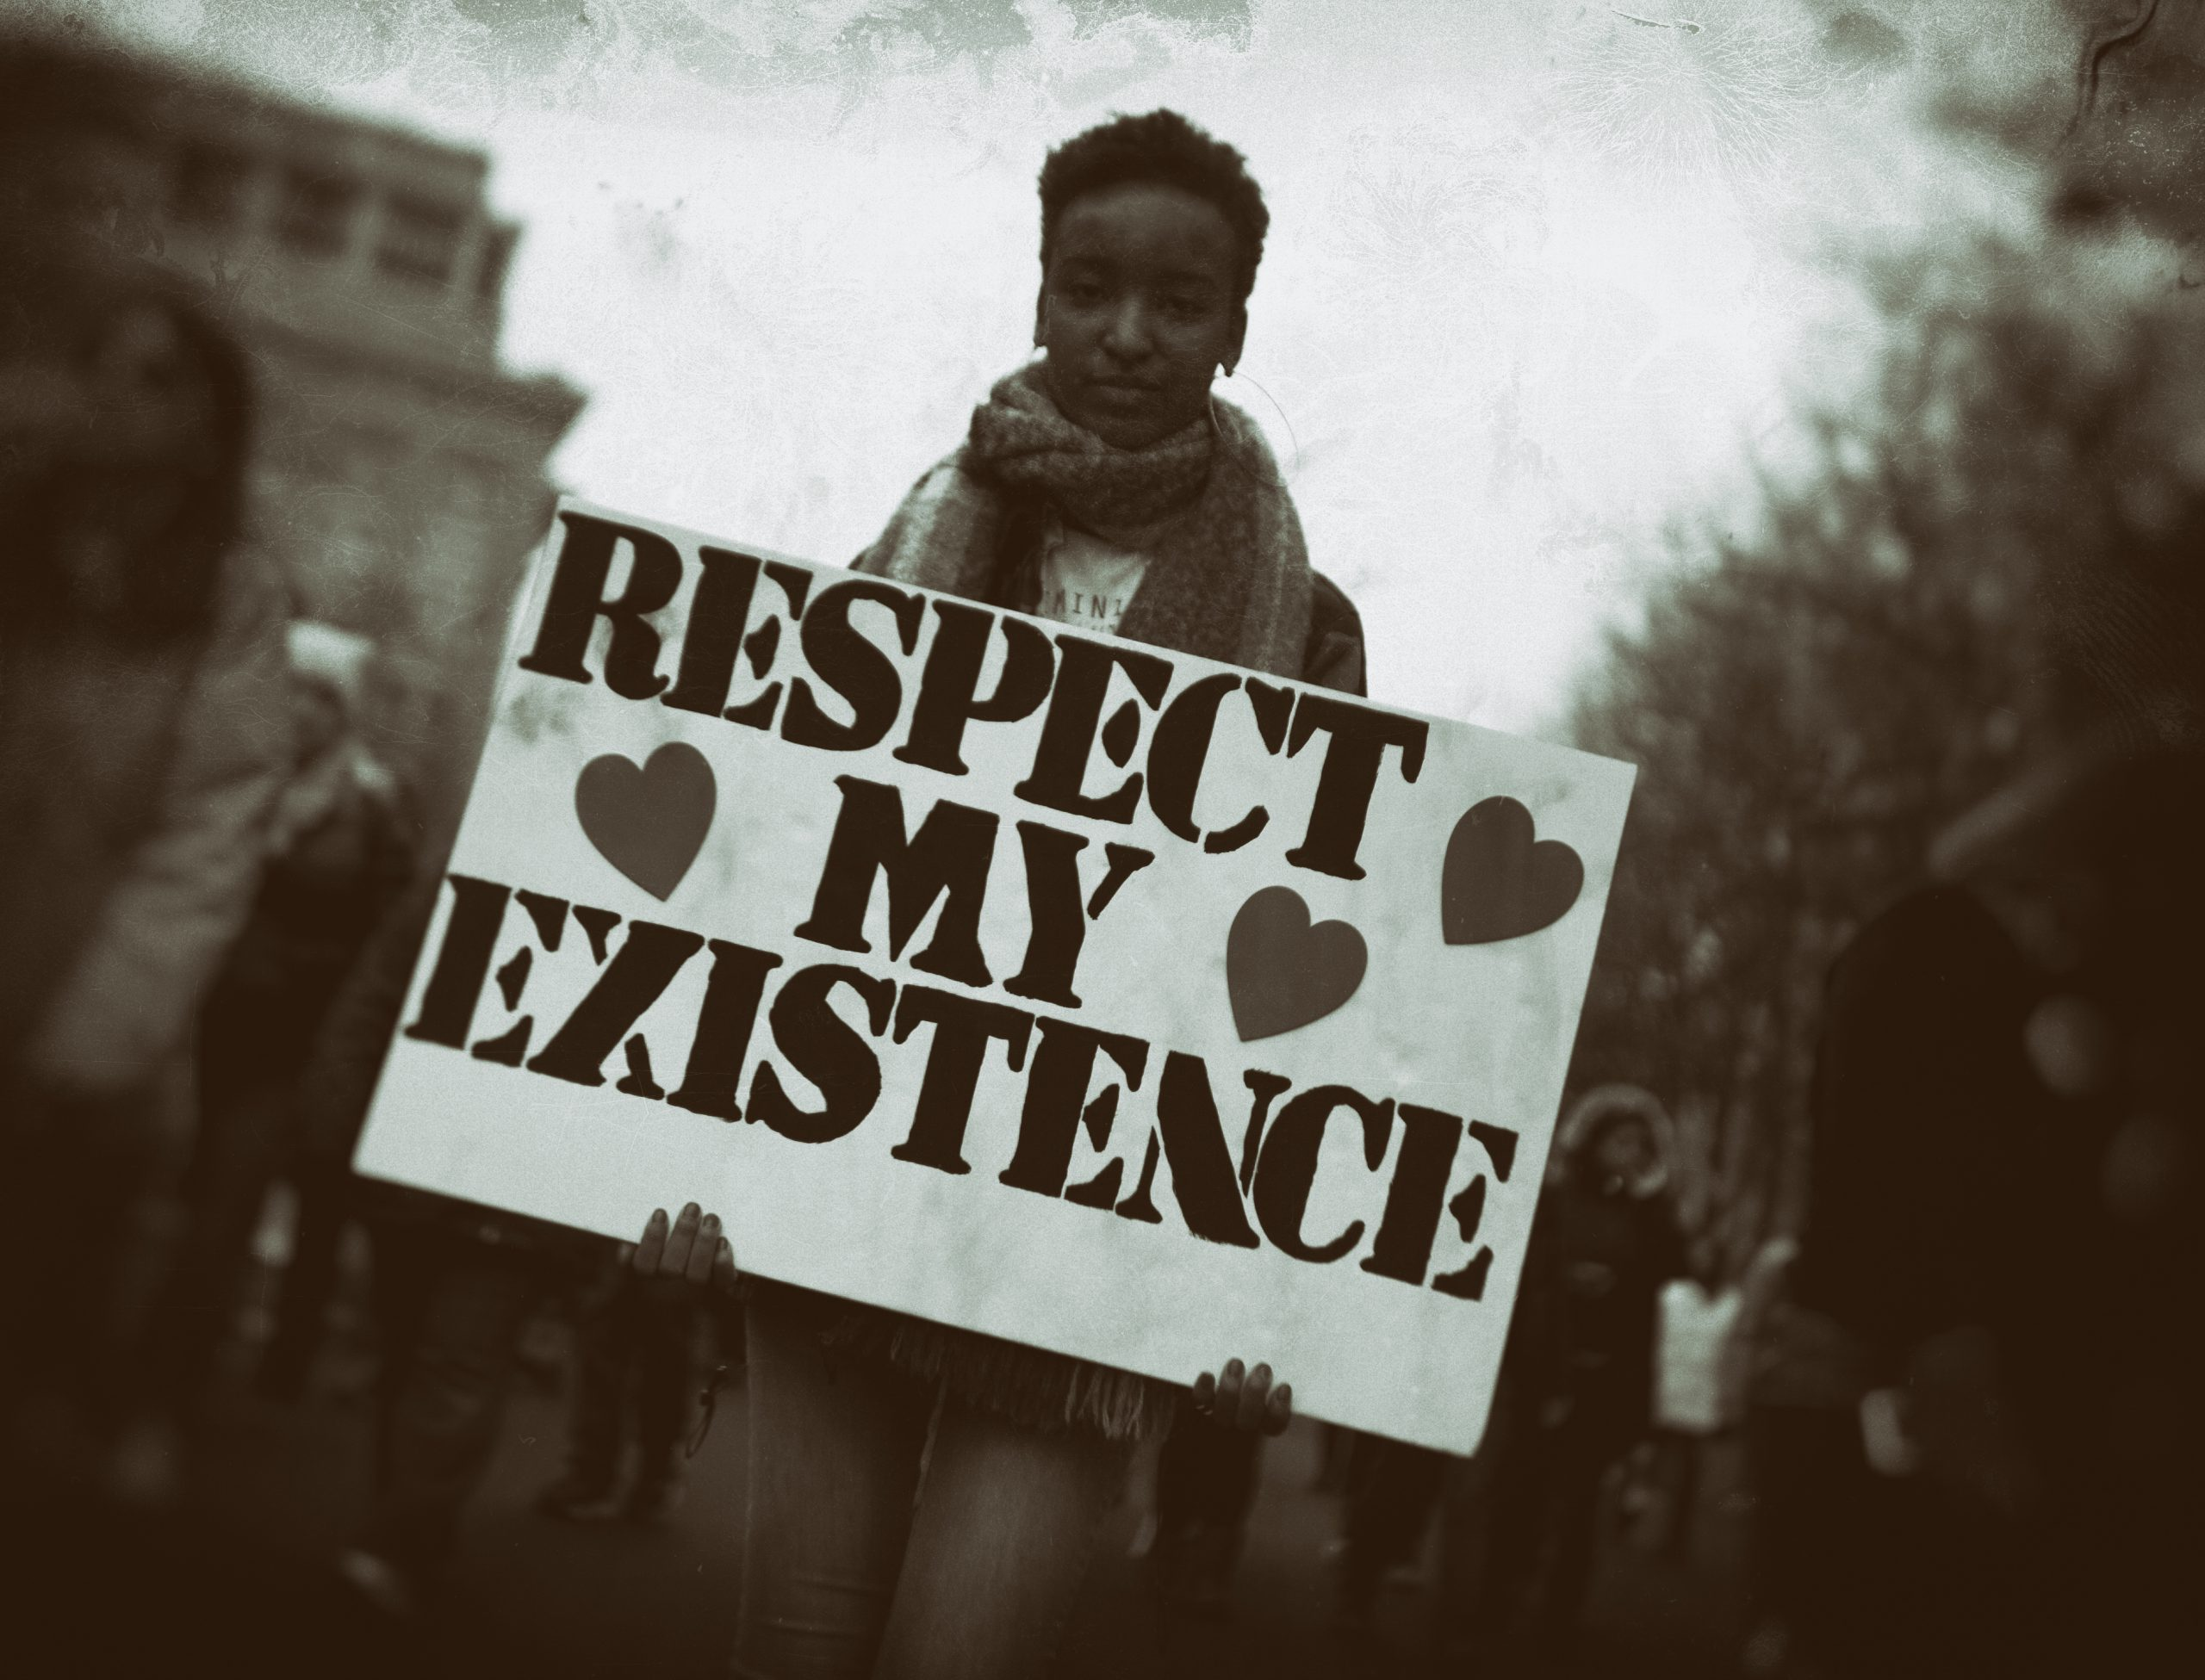 A person holding a respect my existence sign